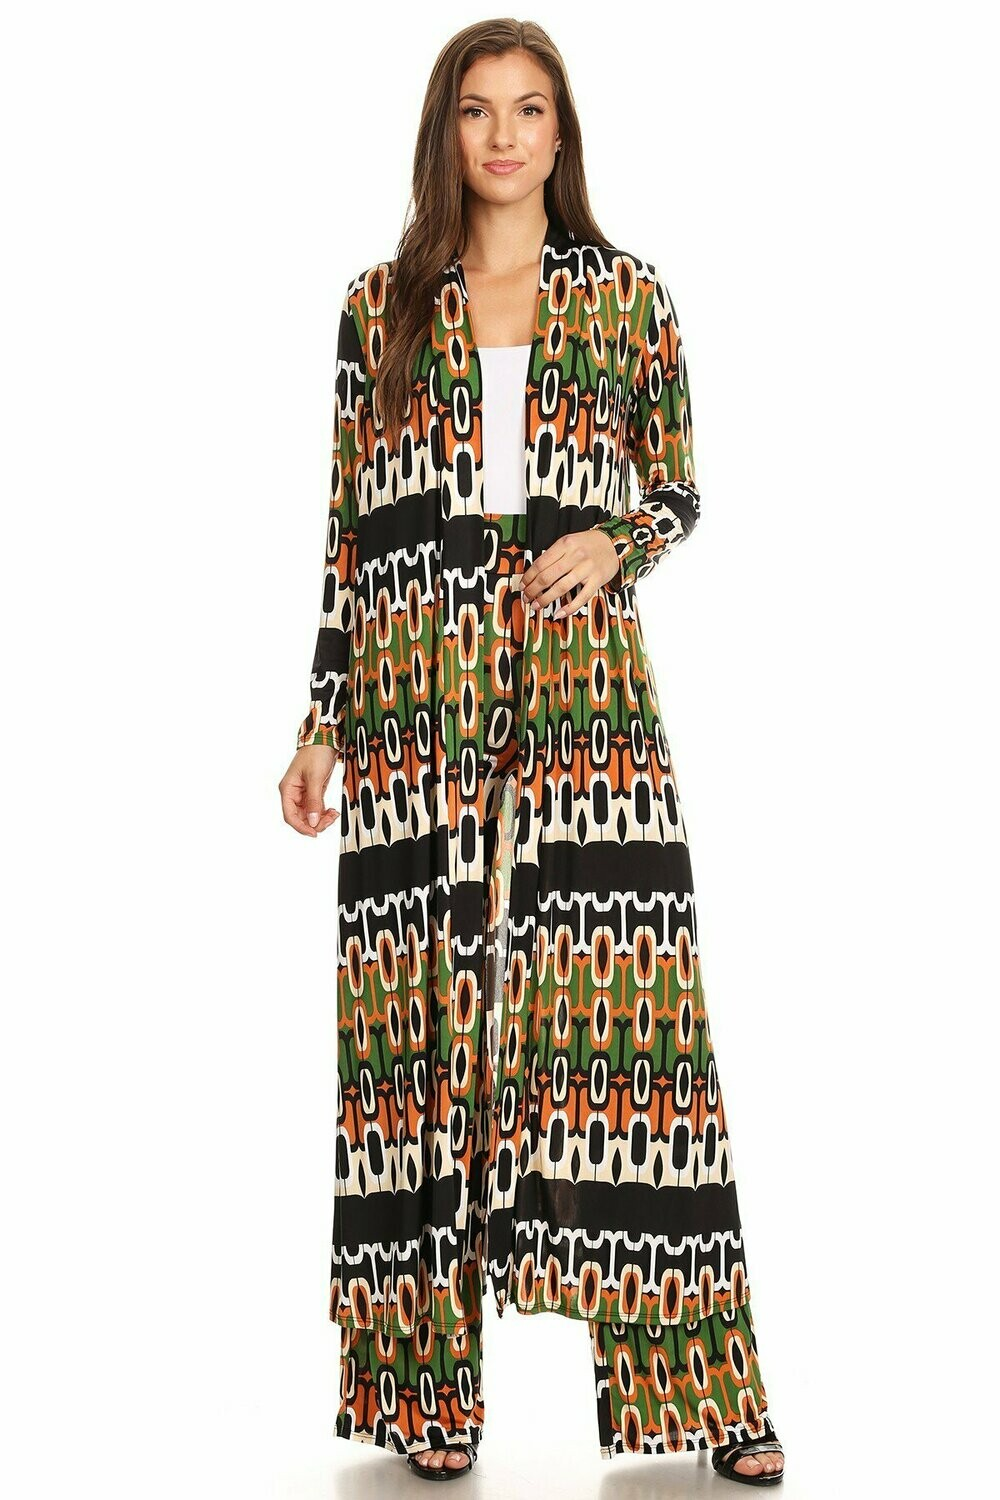 Multicolor abstract printed jacket and pants set: - Long body cardigan in a loose fit, with an open front. - High waisted pants in a relaxed fit, with wide legs, and elastic waist.TOP NOT INCLUDED